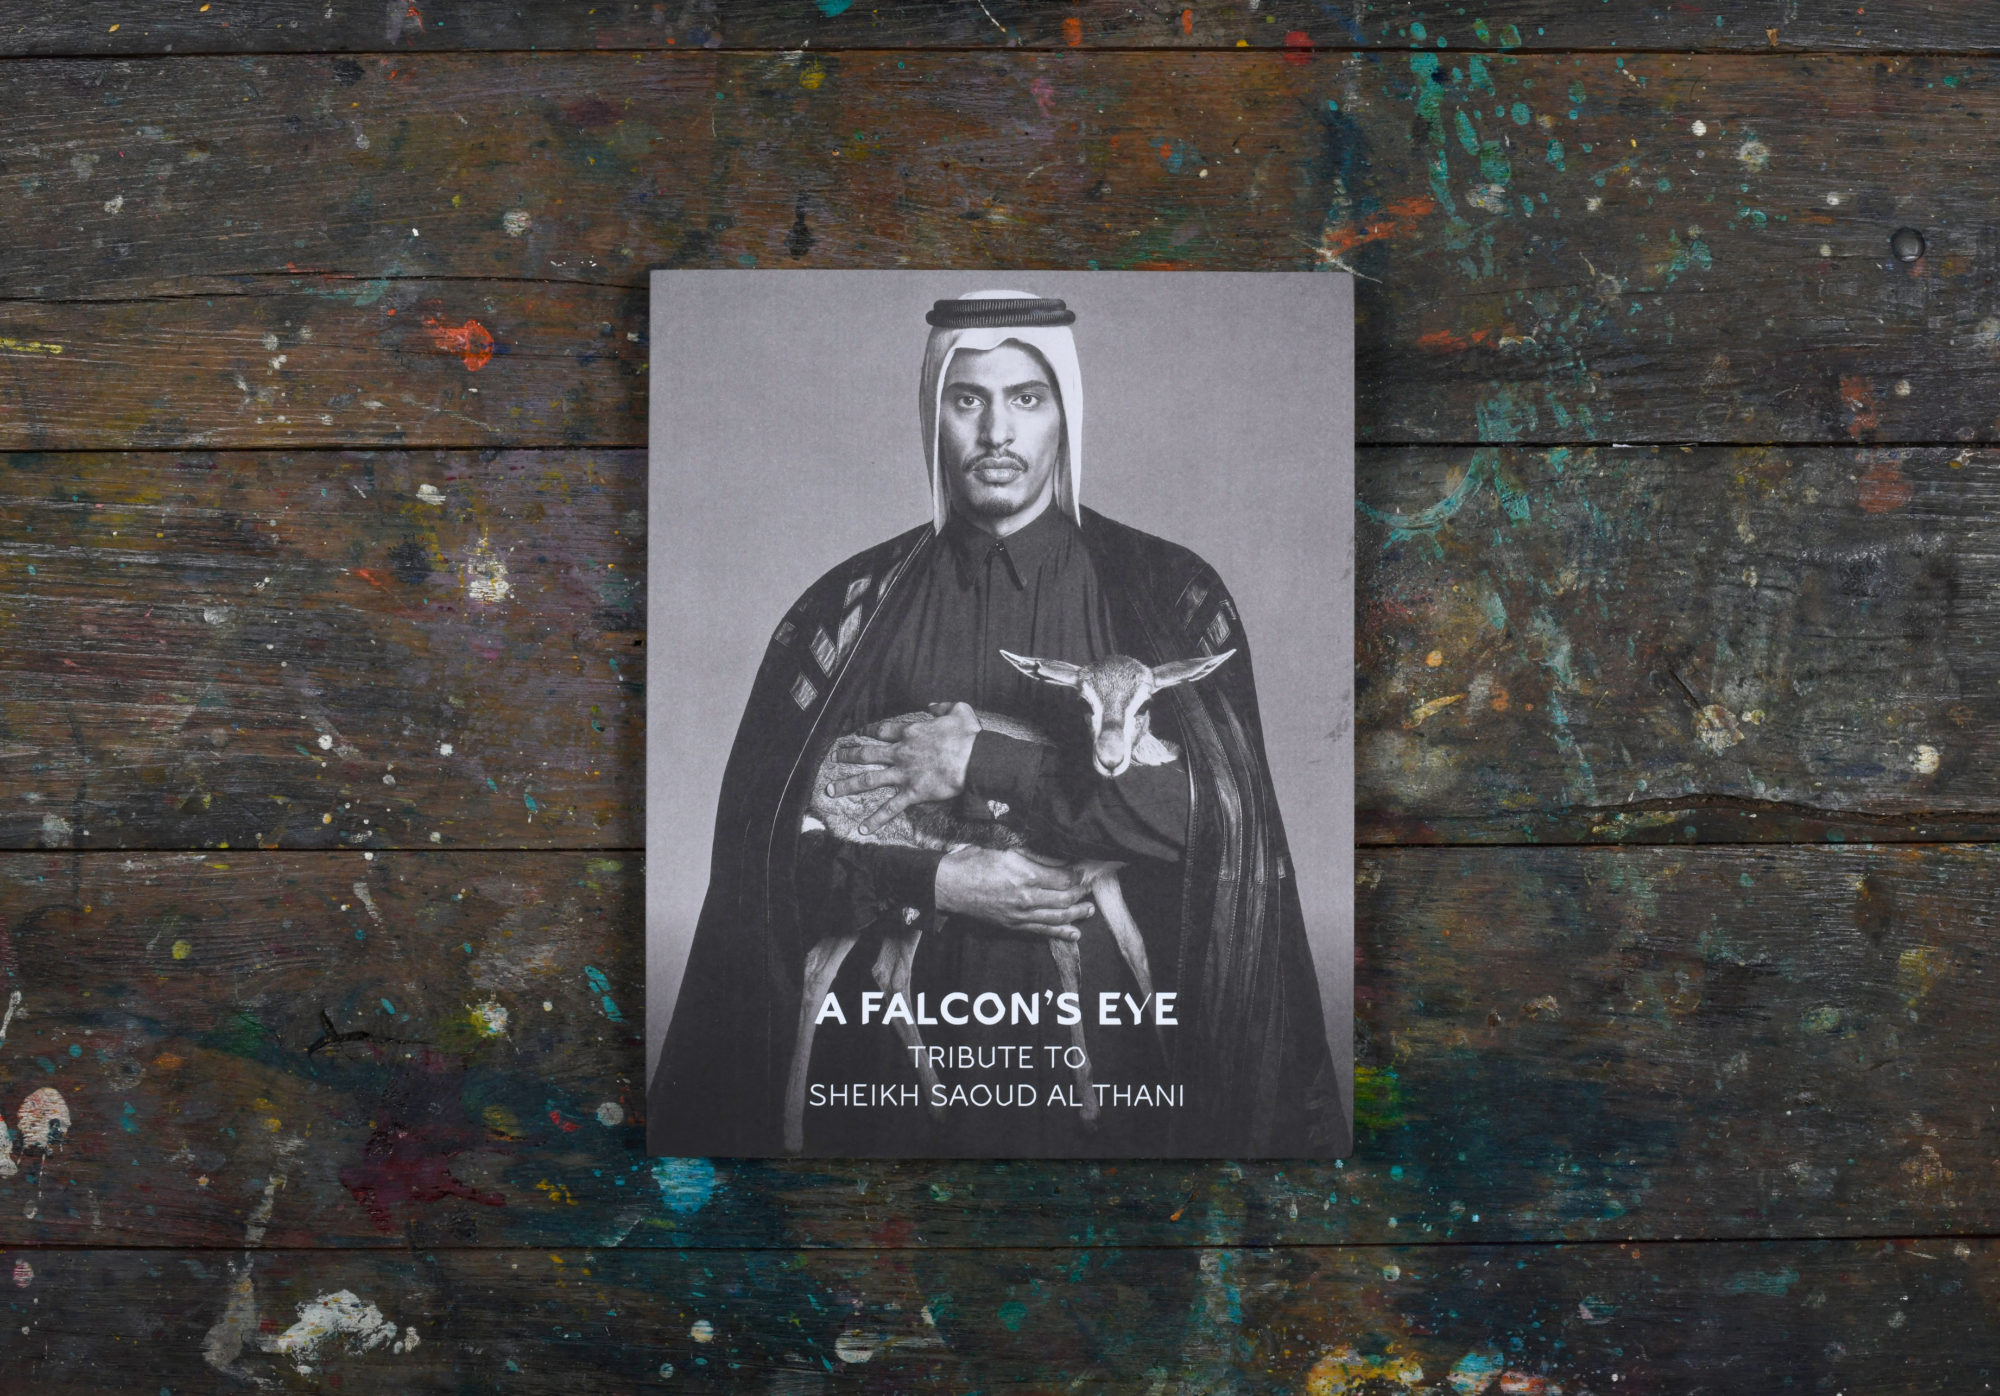 A Falcon's eye Tribute to Sheikh Saoud Al Thani - François-Marie Banier